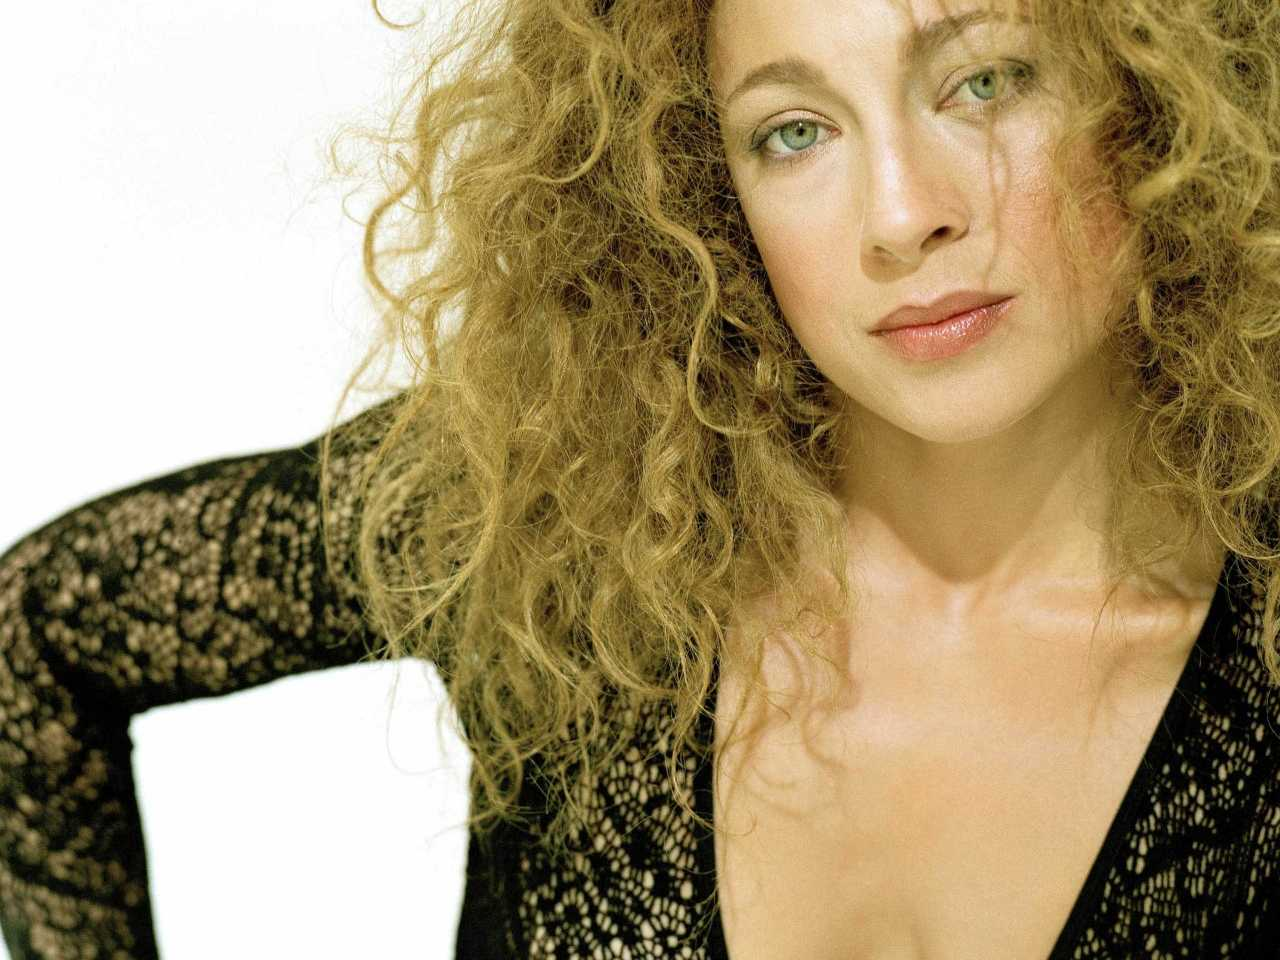 http://2.bp.blogspot.com/-MsyOL9qeRc4/TZpIoAzkcEI/AAAAAAAABHY/UKxPc_3dMT4/s1600/Alex-Kingston_Wallpaper_05.jpg